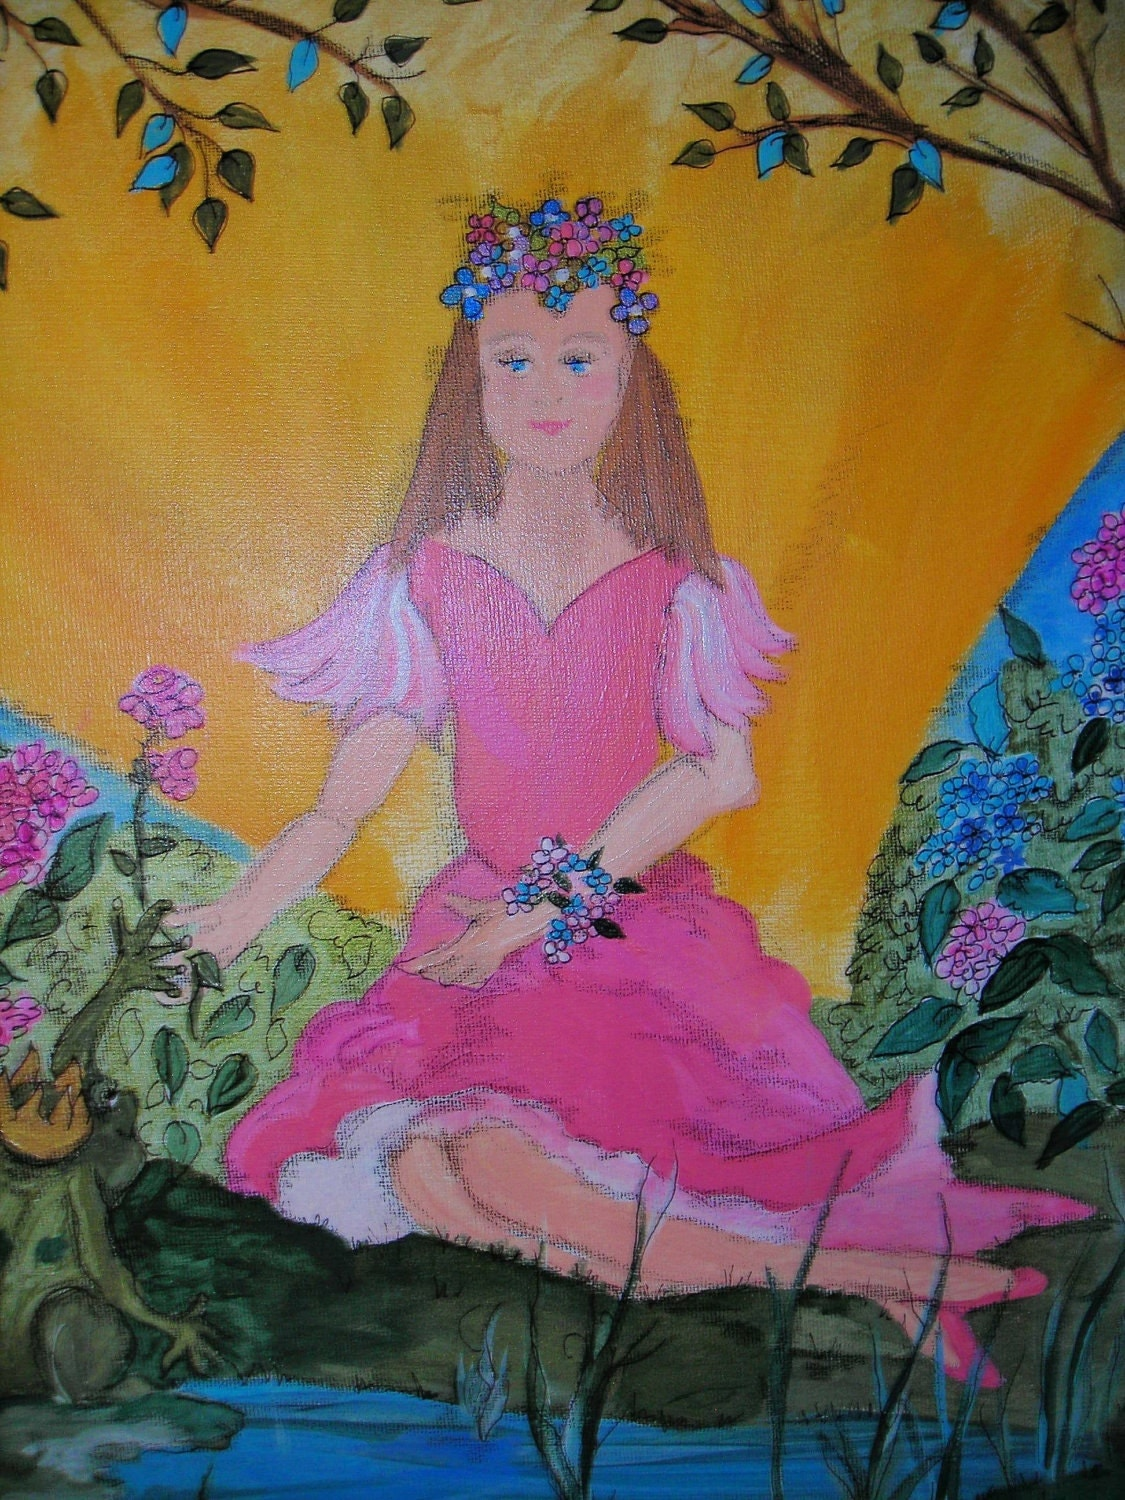 Princess Wall Art OOAK Original Acrylic Painting Children's painting 20x16 of The Princess and the Frog